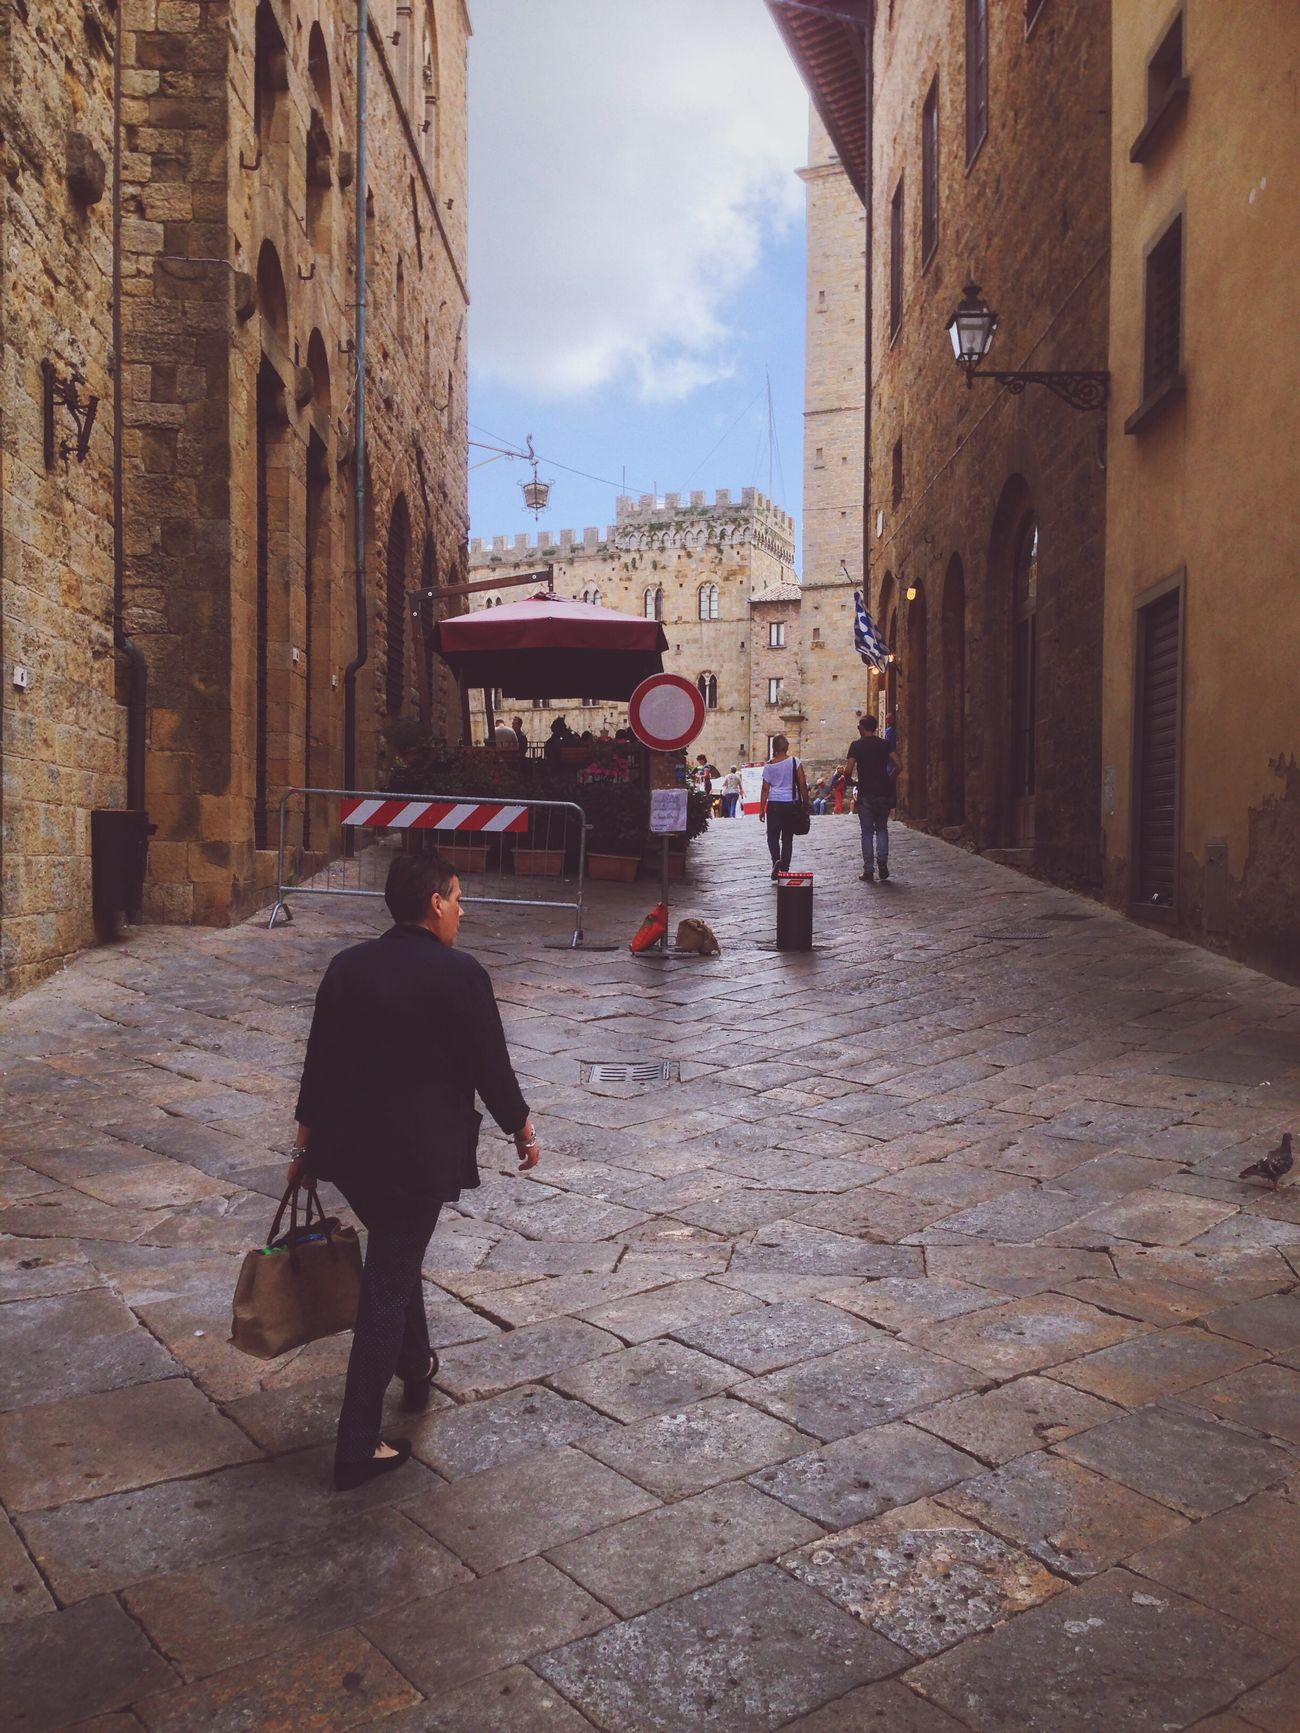 From My Point Of View Shootermag Visual Witness Vscocam EyeEm Traveling Around The World People Watching Streetphotography EyeEm In Volterra Showcase: February The Street Photographer - 2016 EyeEm Awards